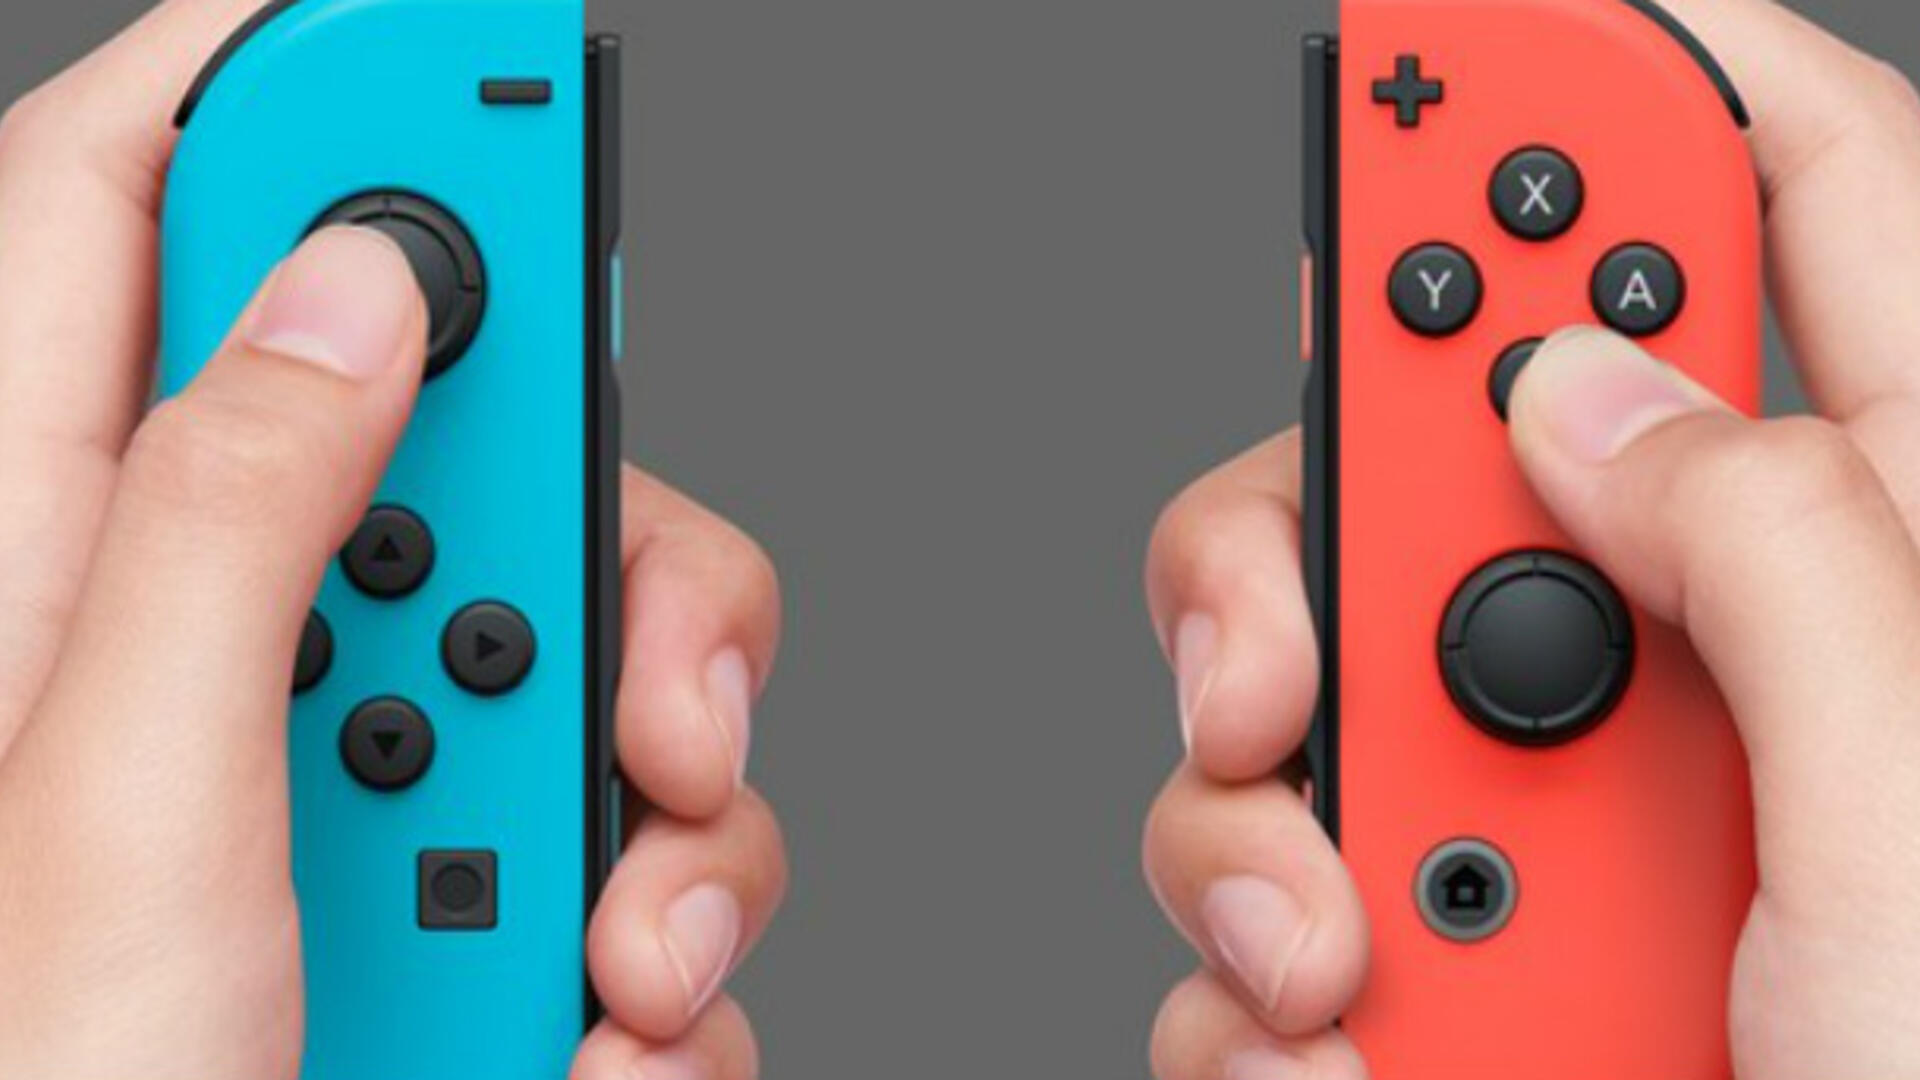 Nintendo Switch Accessory Prices Are Steep, $80 For Additional JoyCons